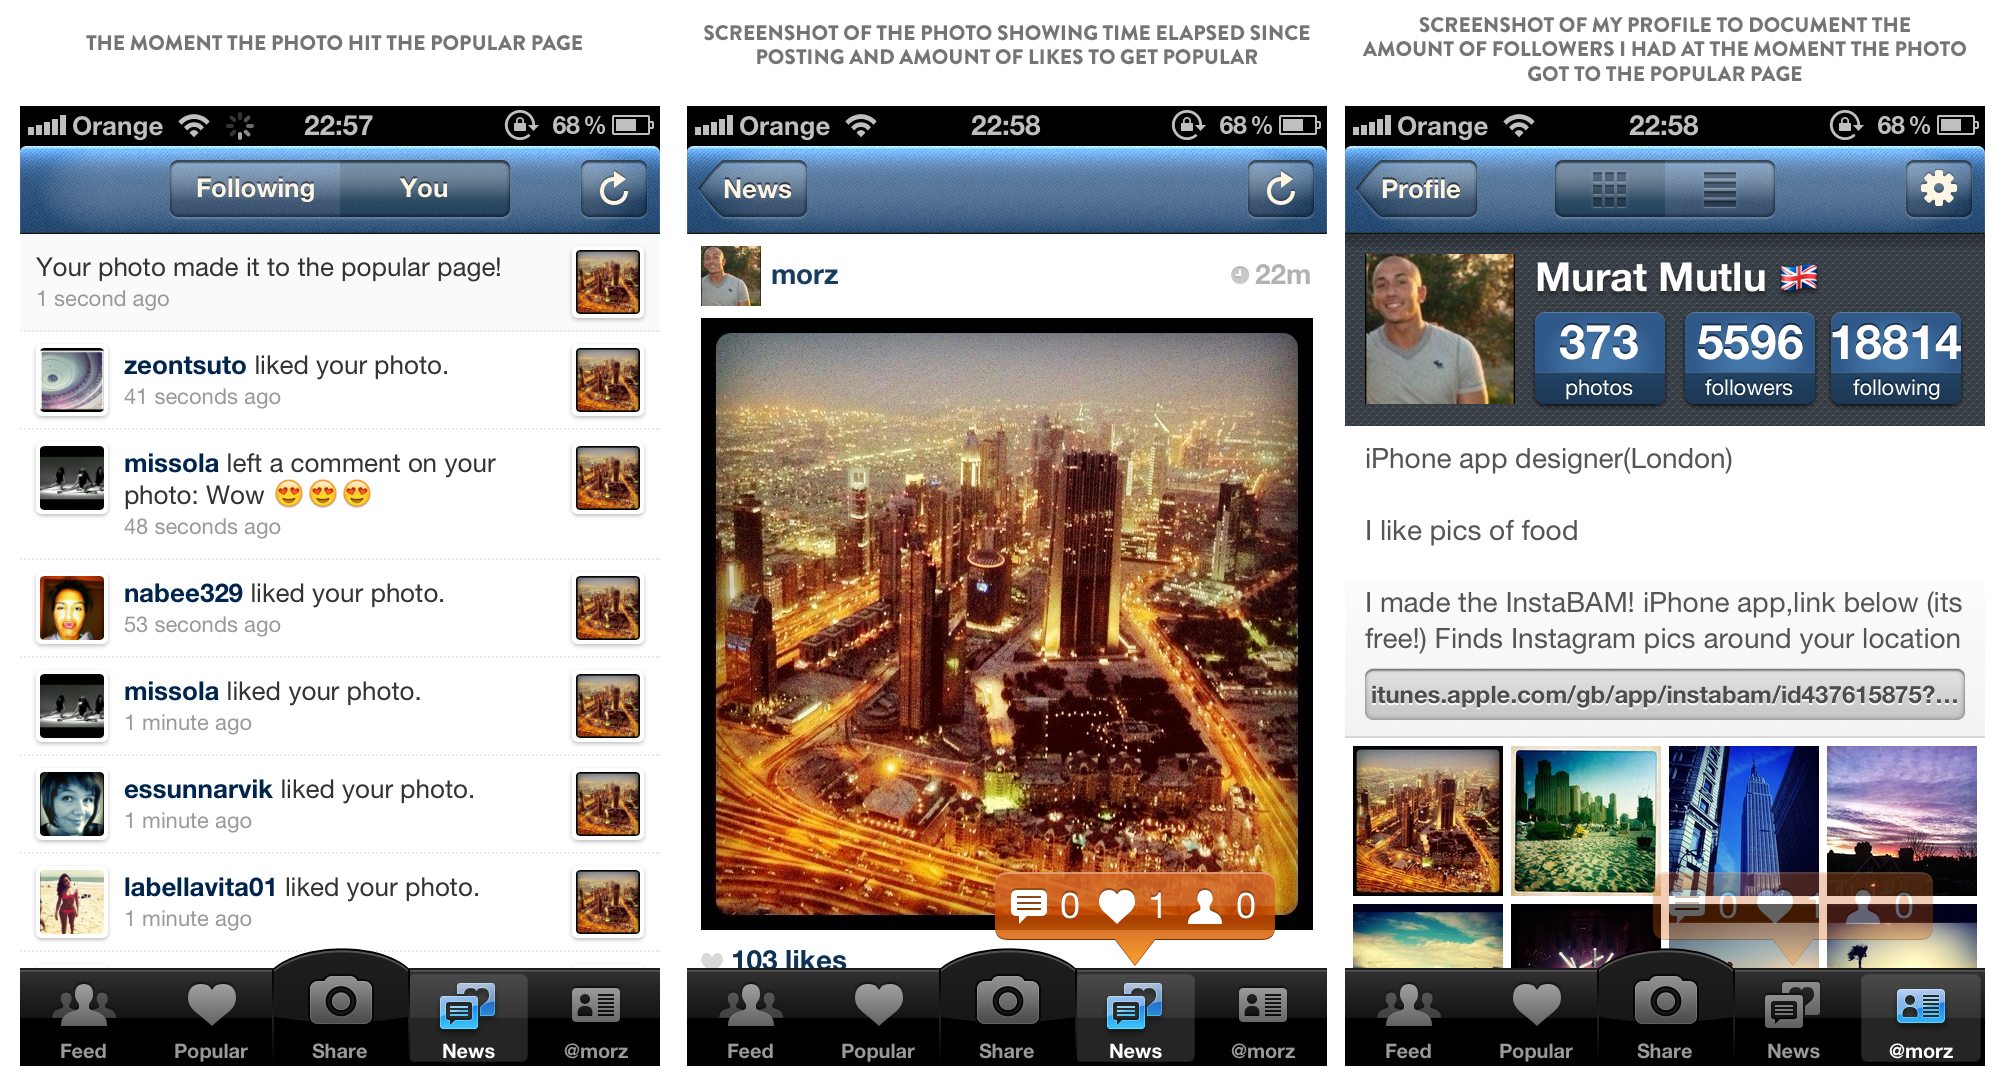 Follow Pie – The Story Of The Instagram Bot Made To Increase App